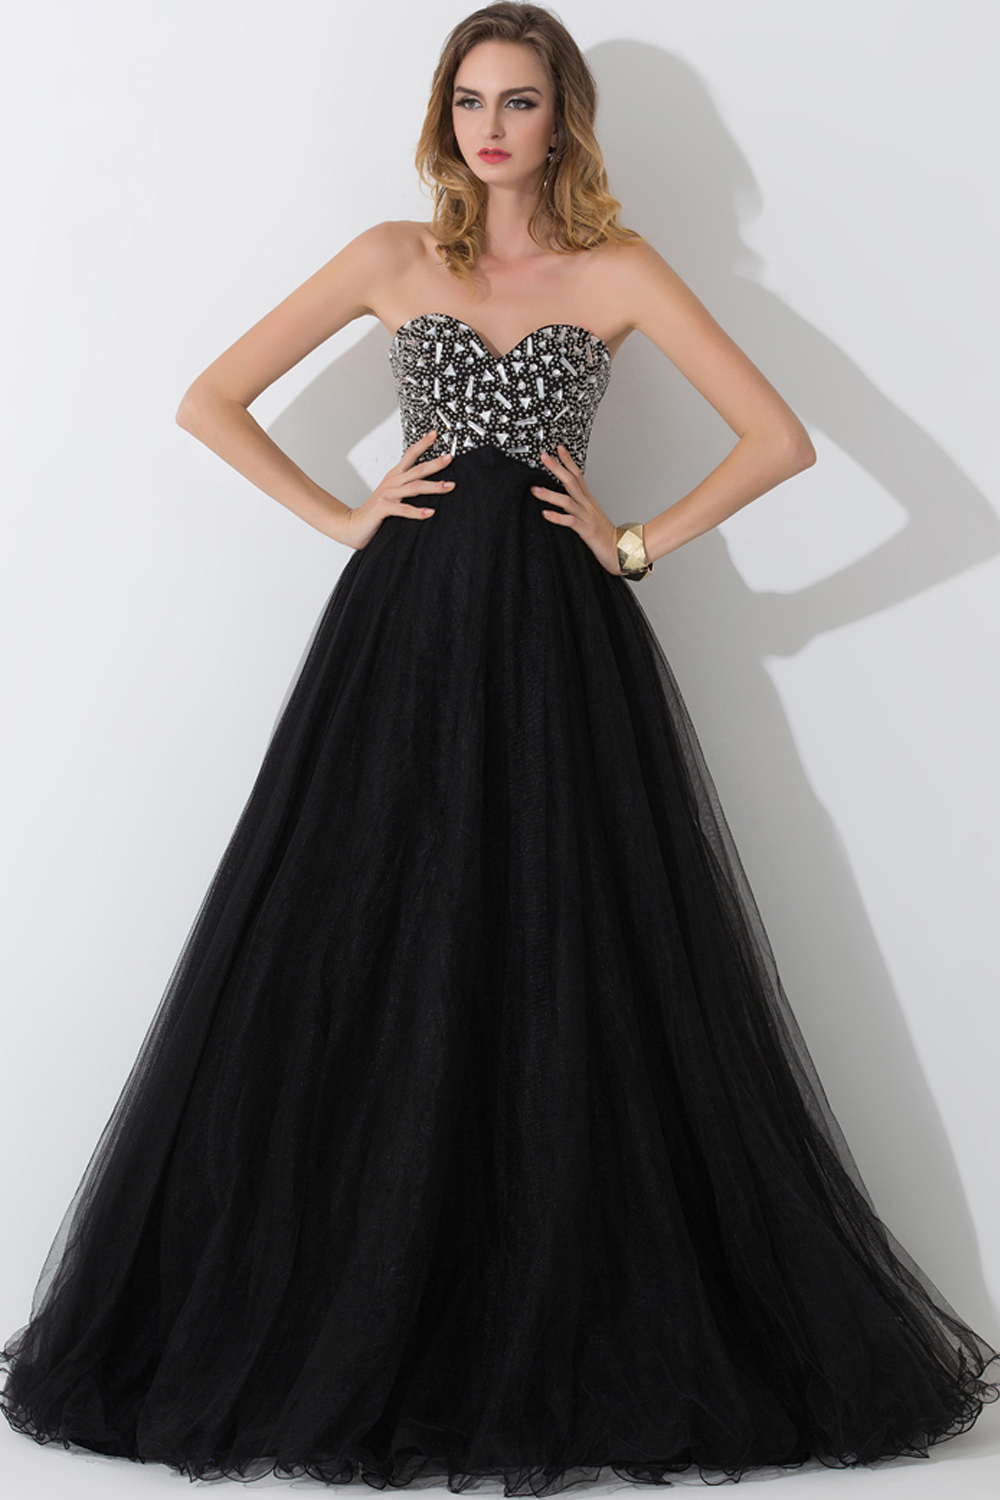 A-Line/Princess Strapless Floor-Length Tulle Evening Dress with Beadings